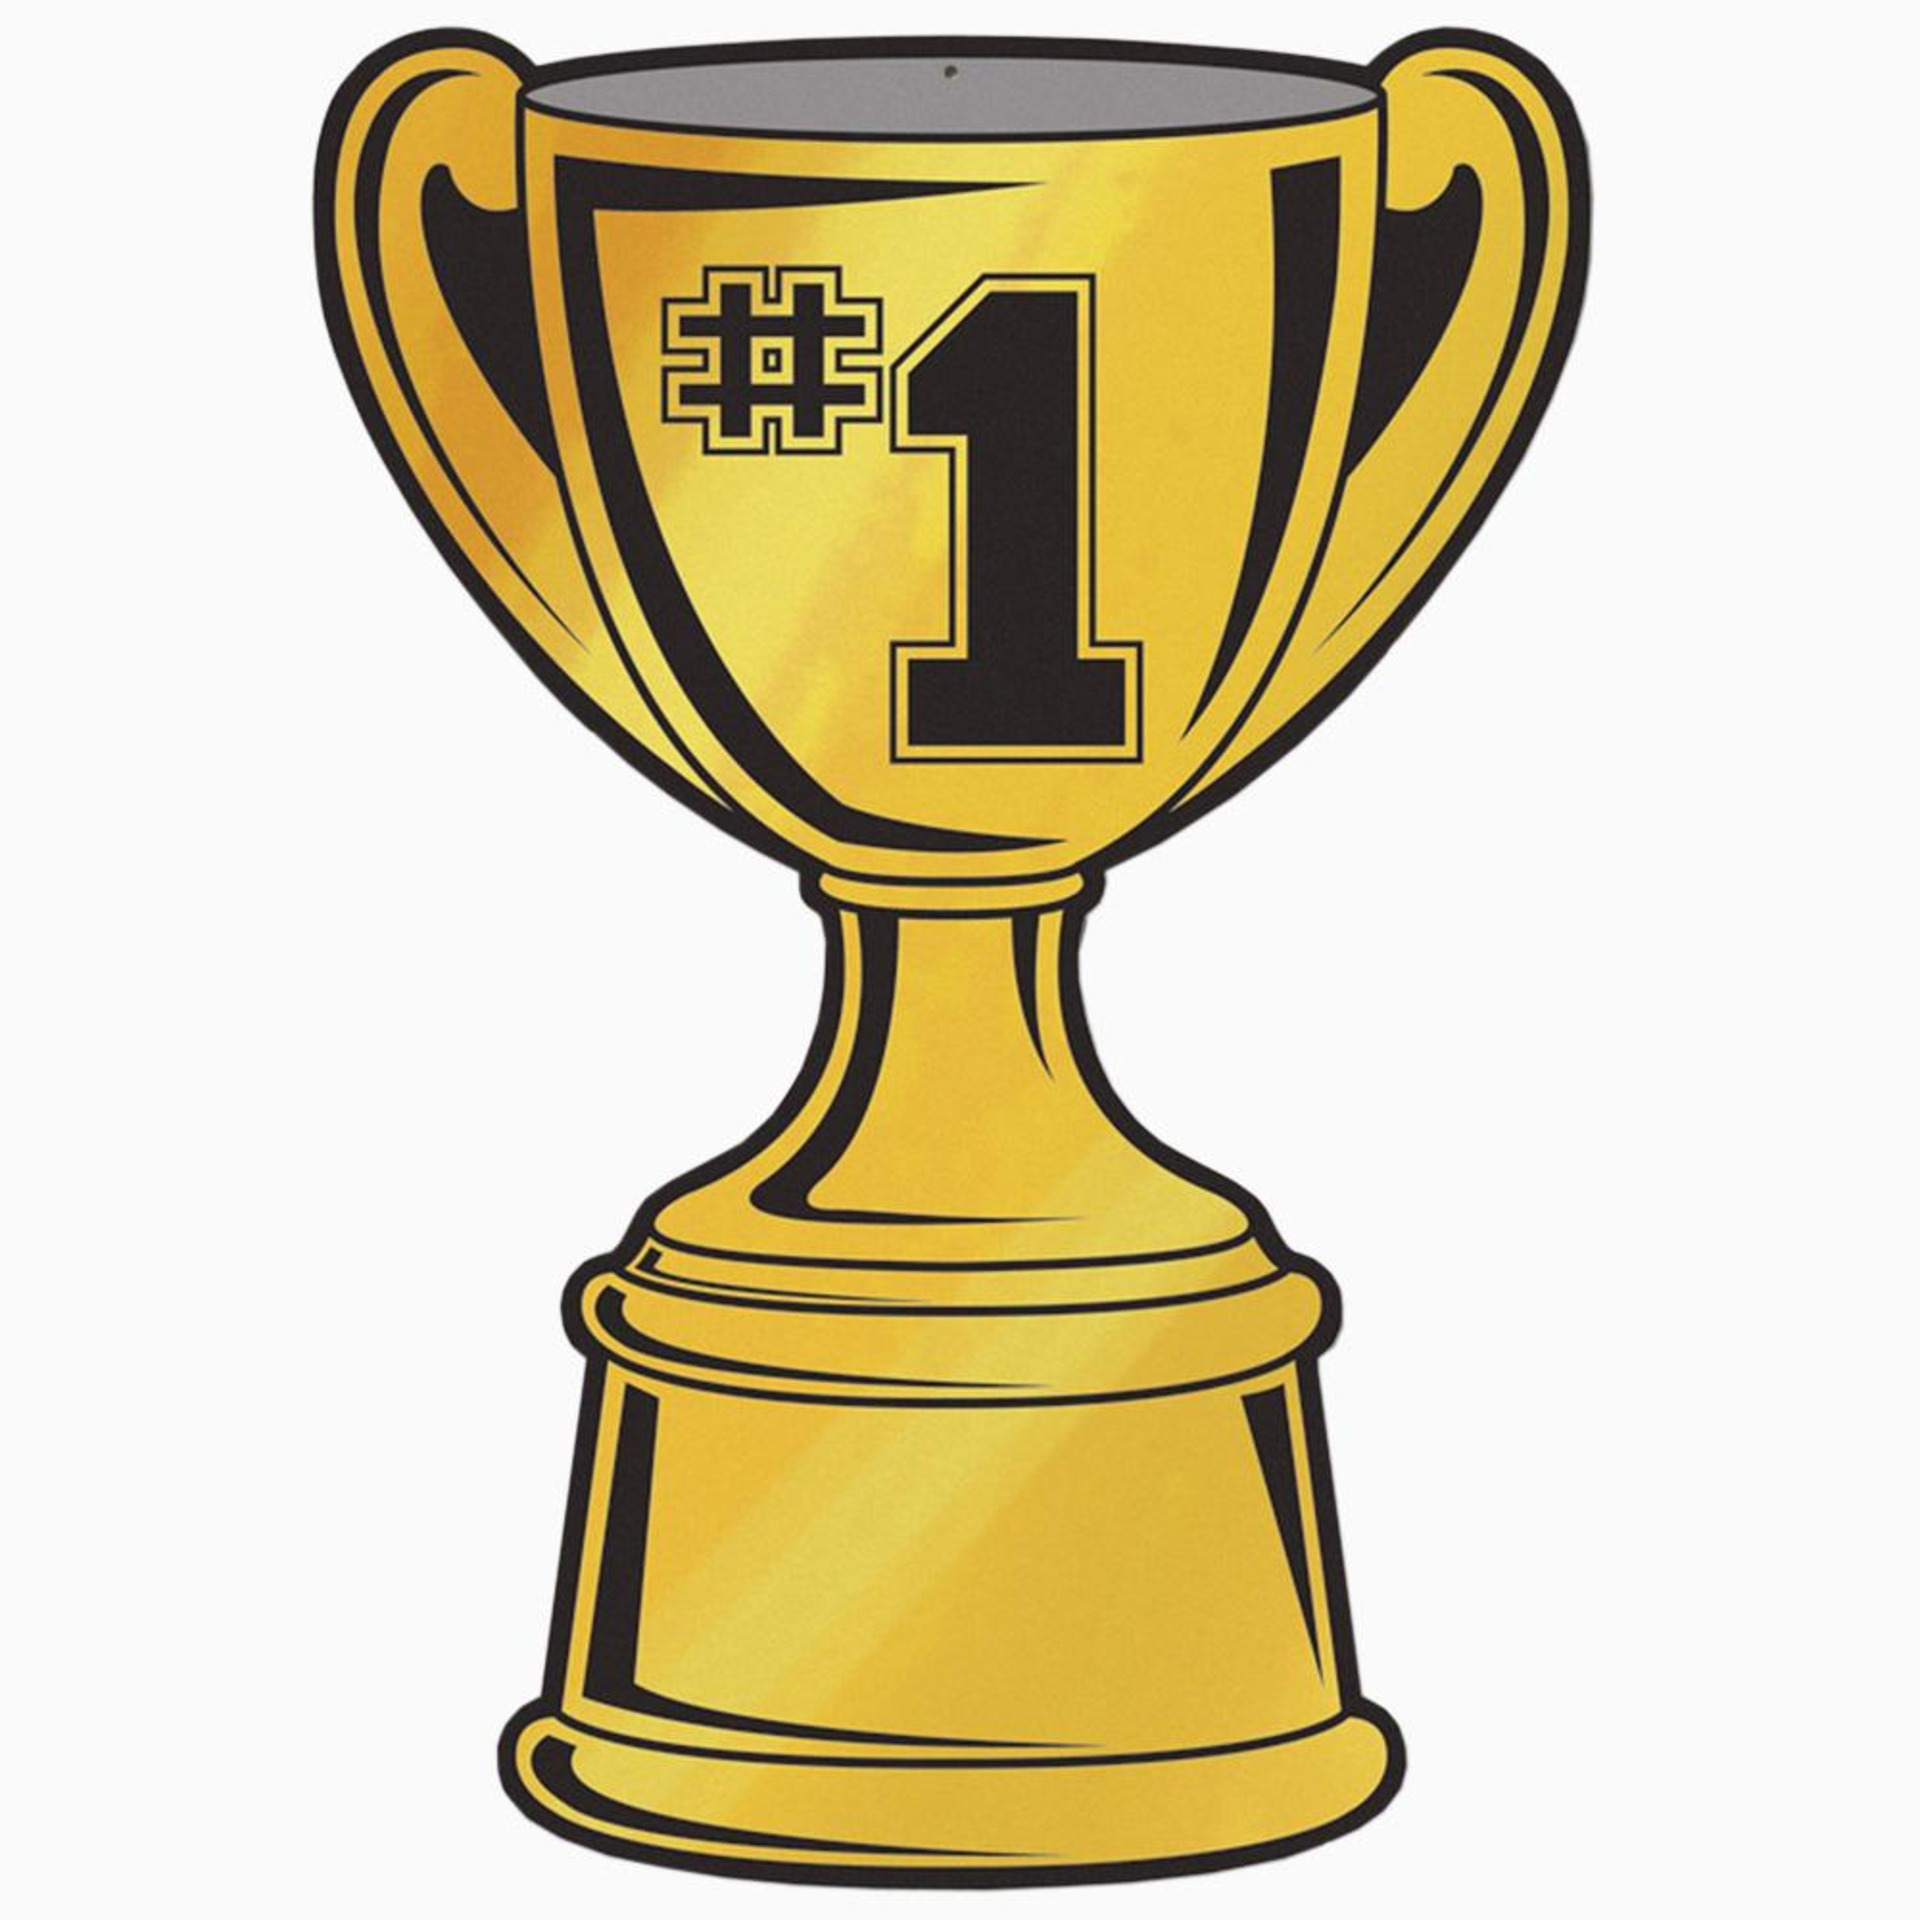 Trophy images clipart black and white stock Free Trophy, Download Free Clip Art, Free Clip Art on Clipart Library black and white stock